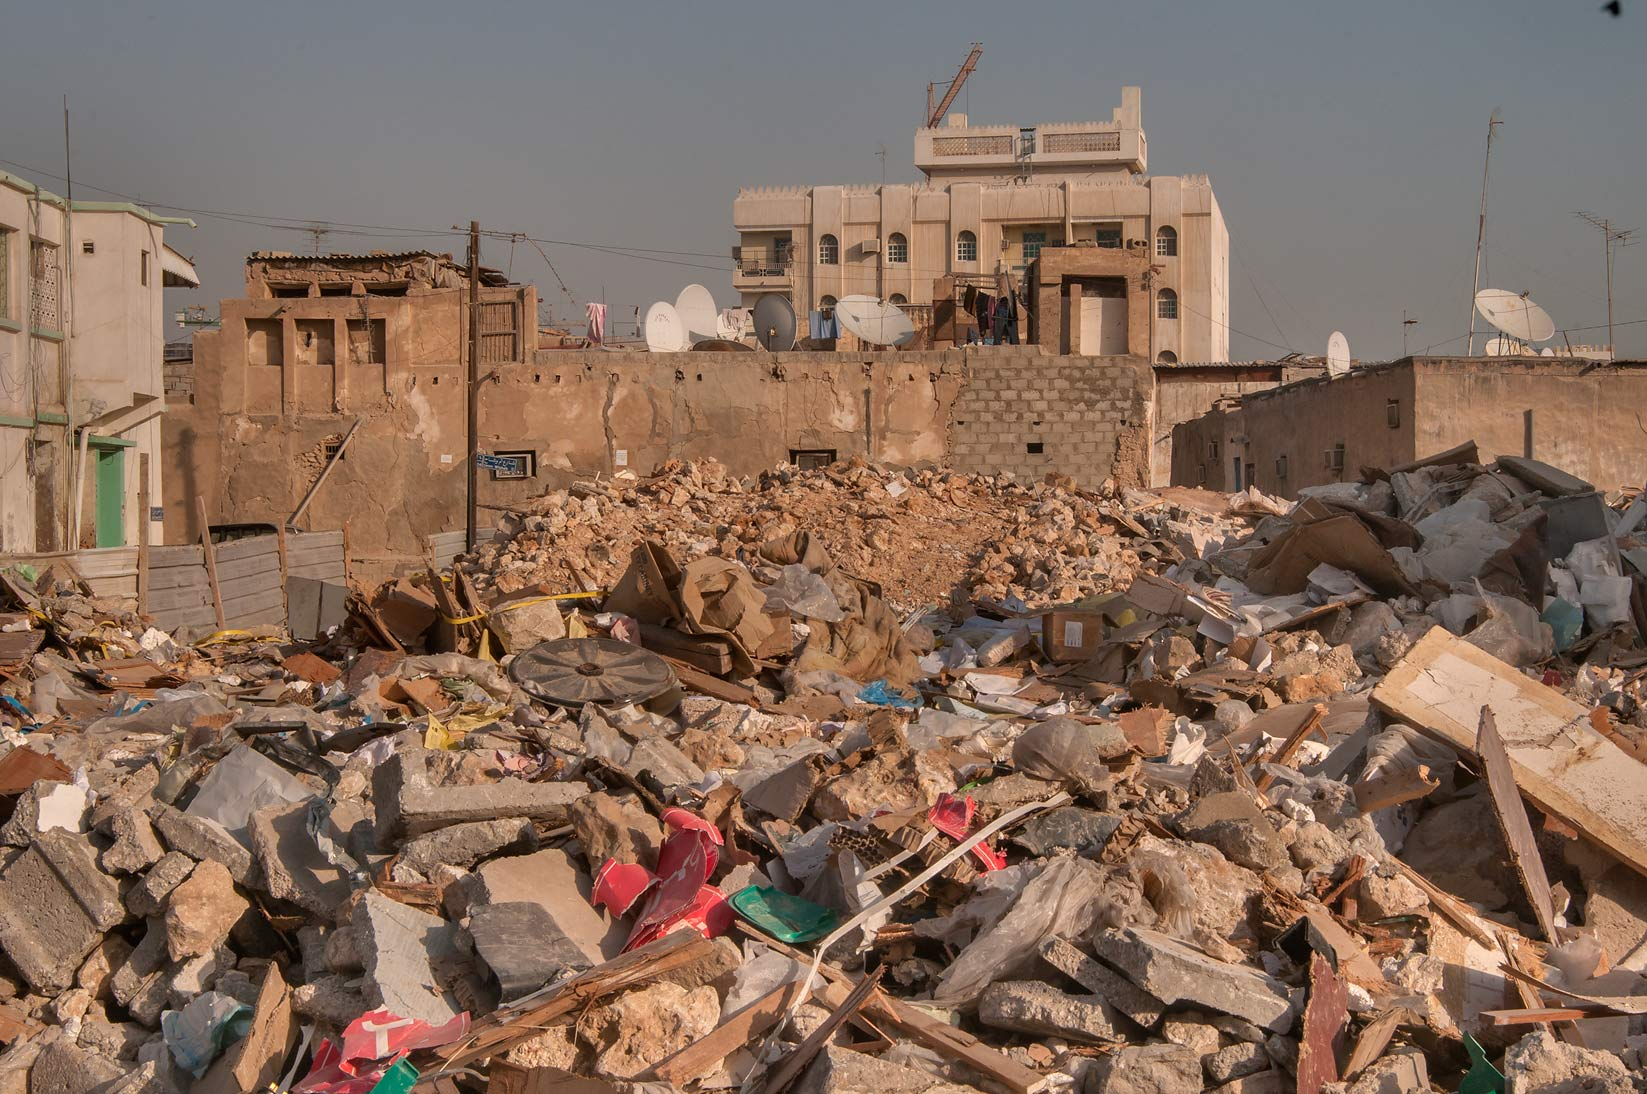 Rubble near Al Maymoun St., Musheirib area. Doha, Qatar